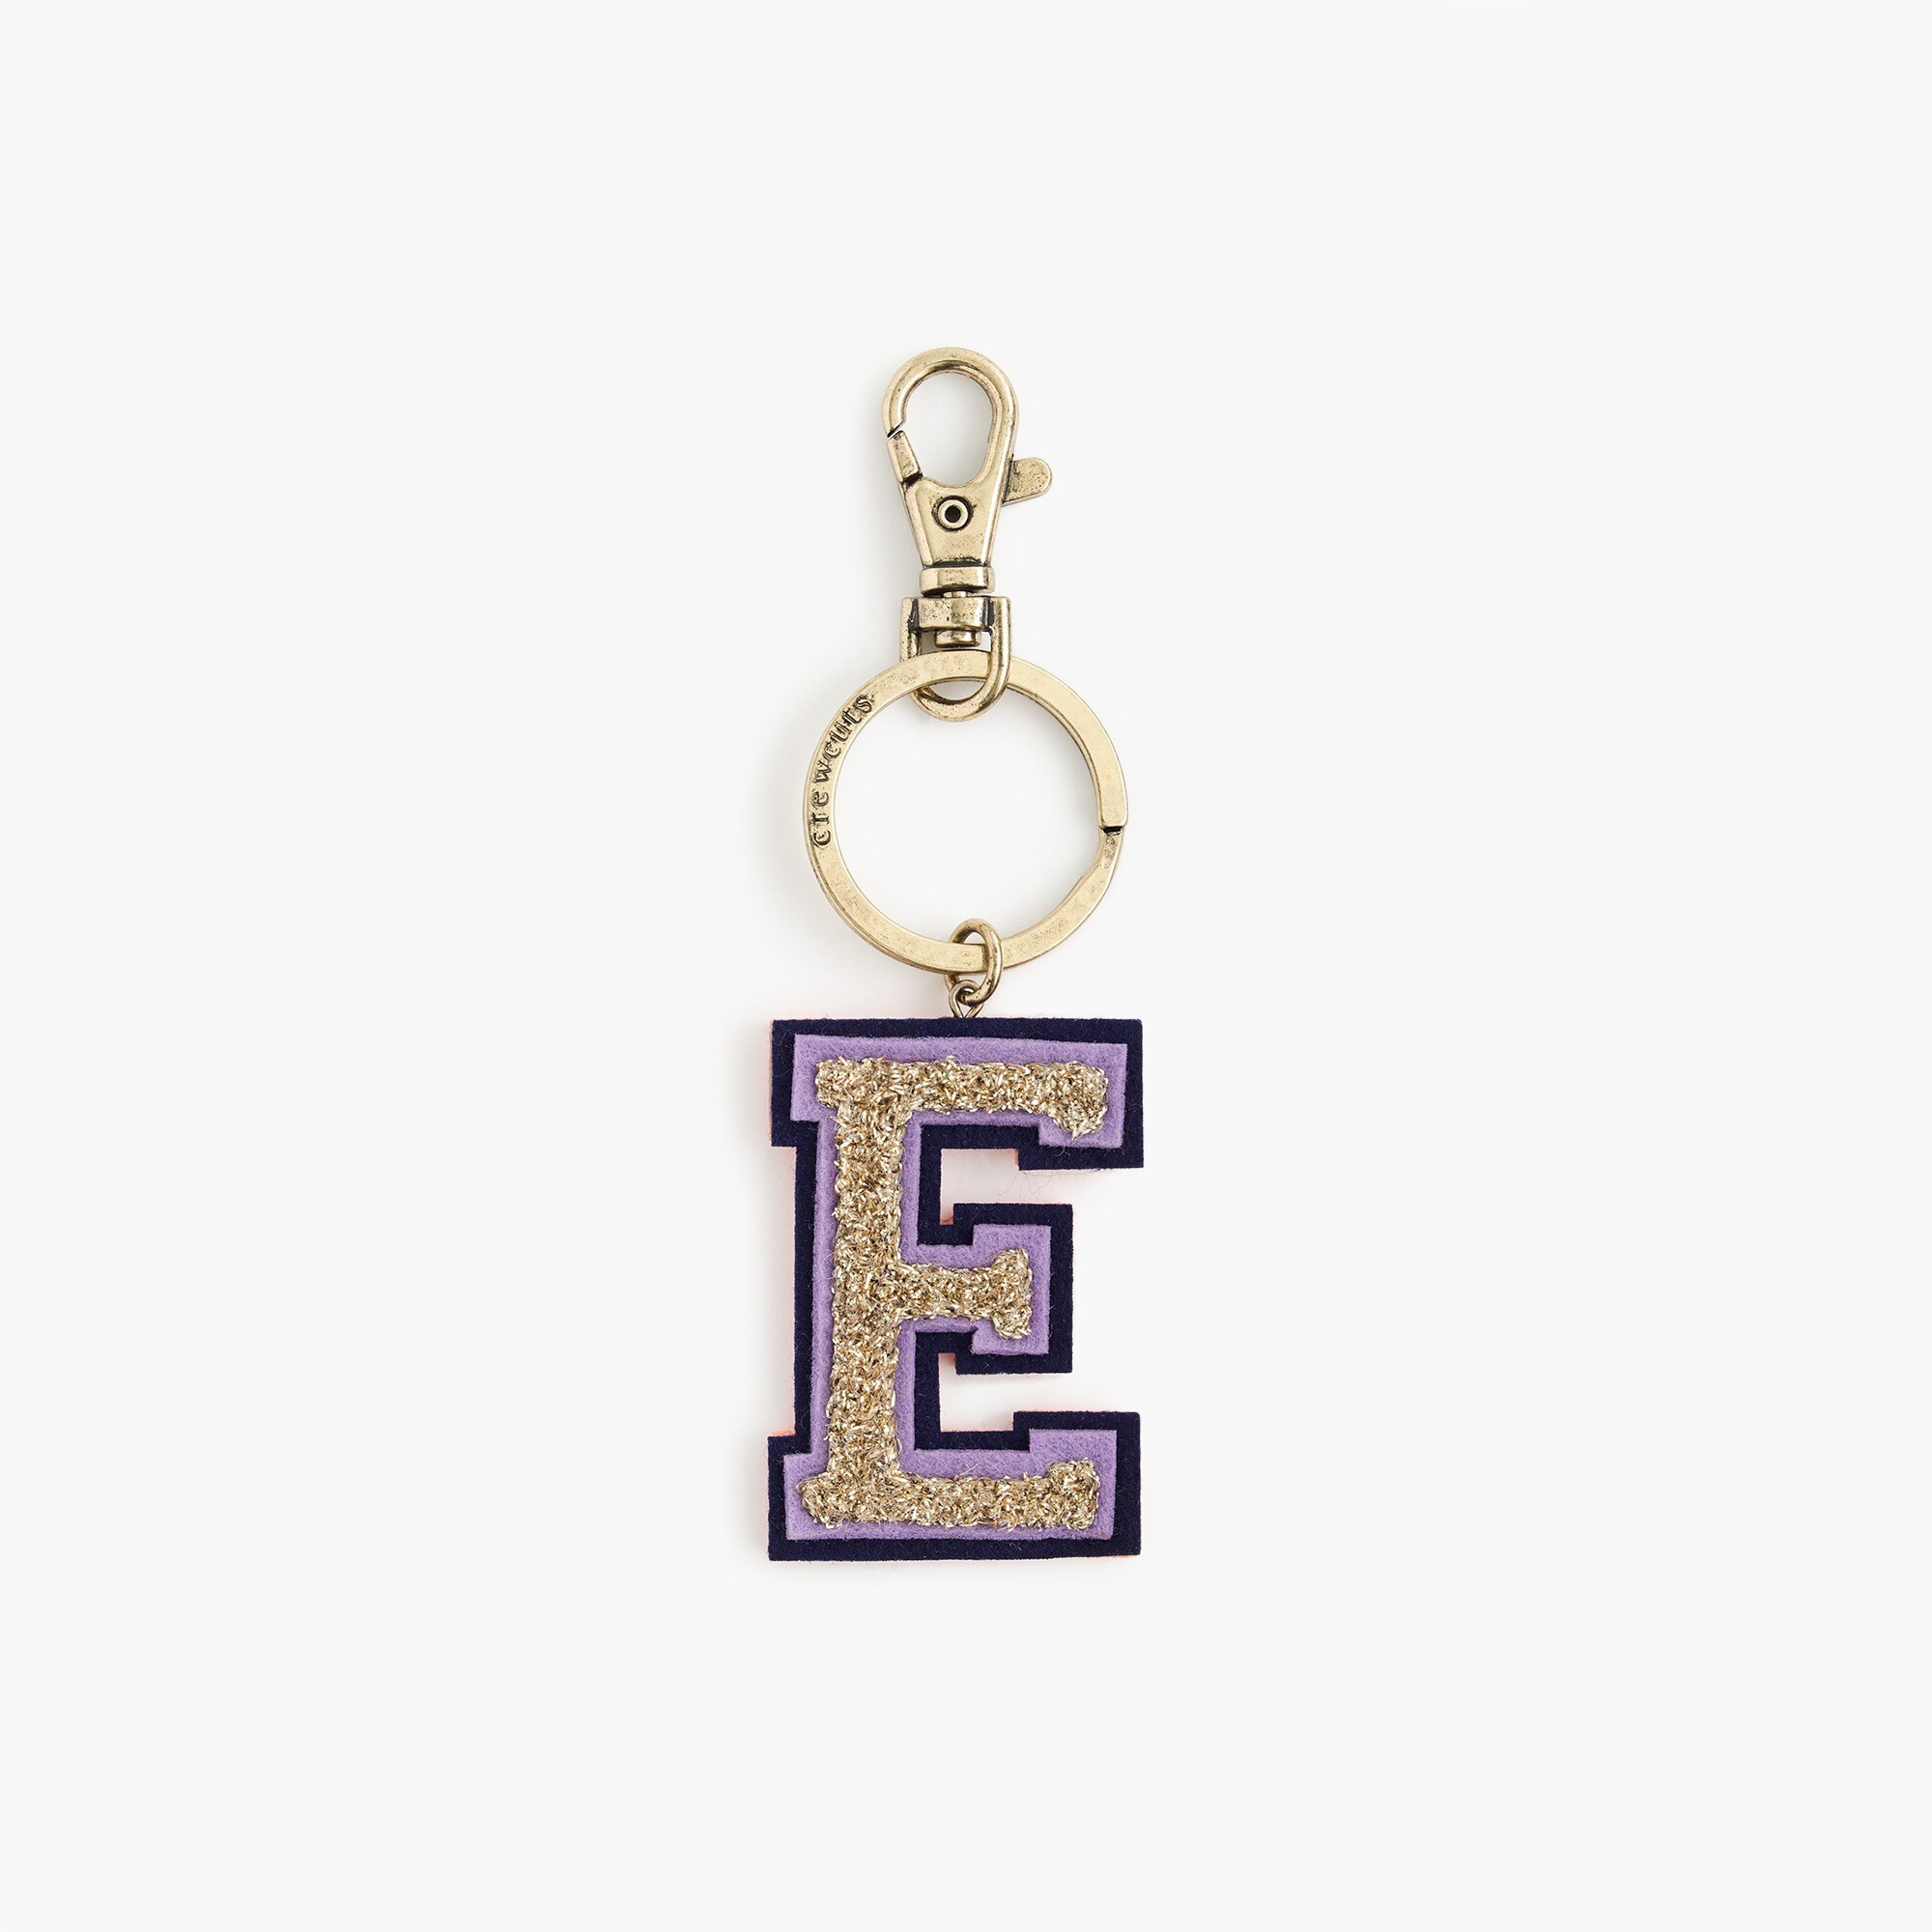 kids' letter key chain : boy accessories